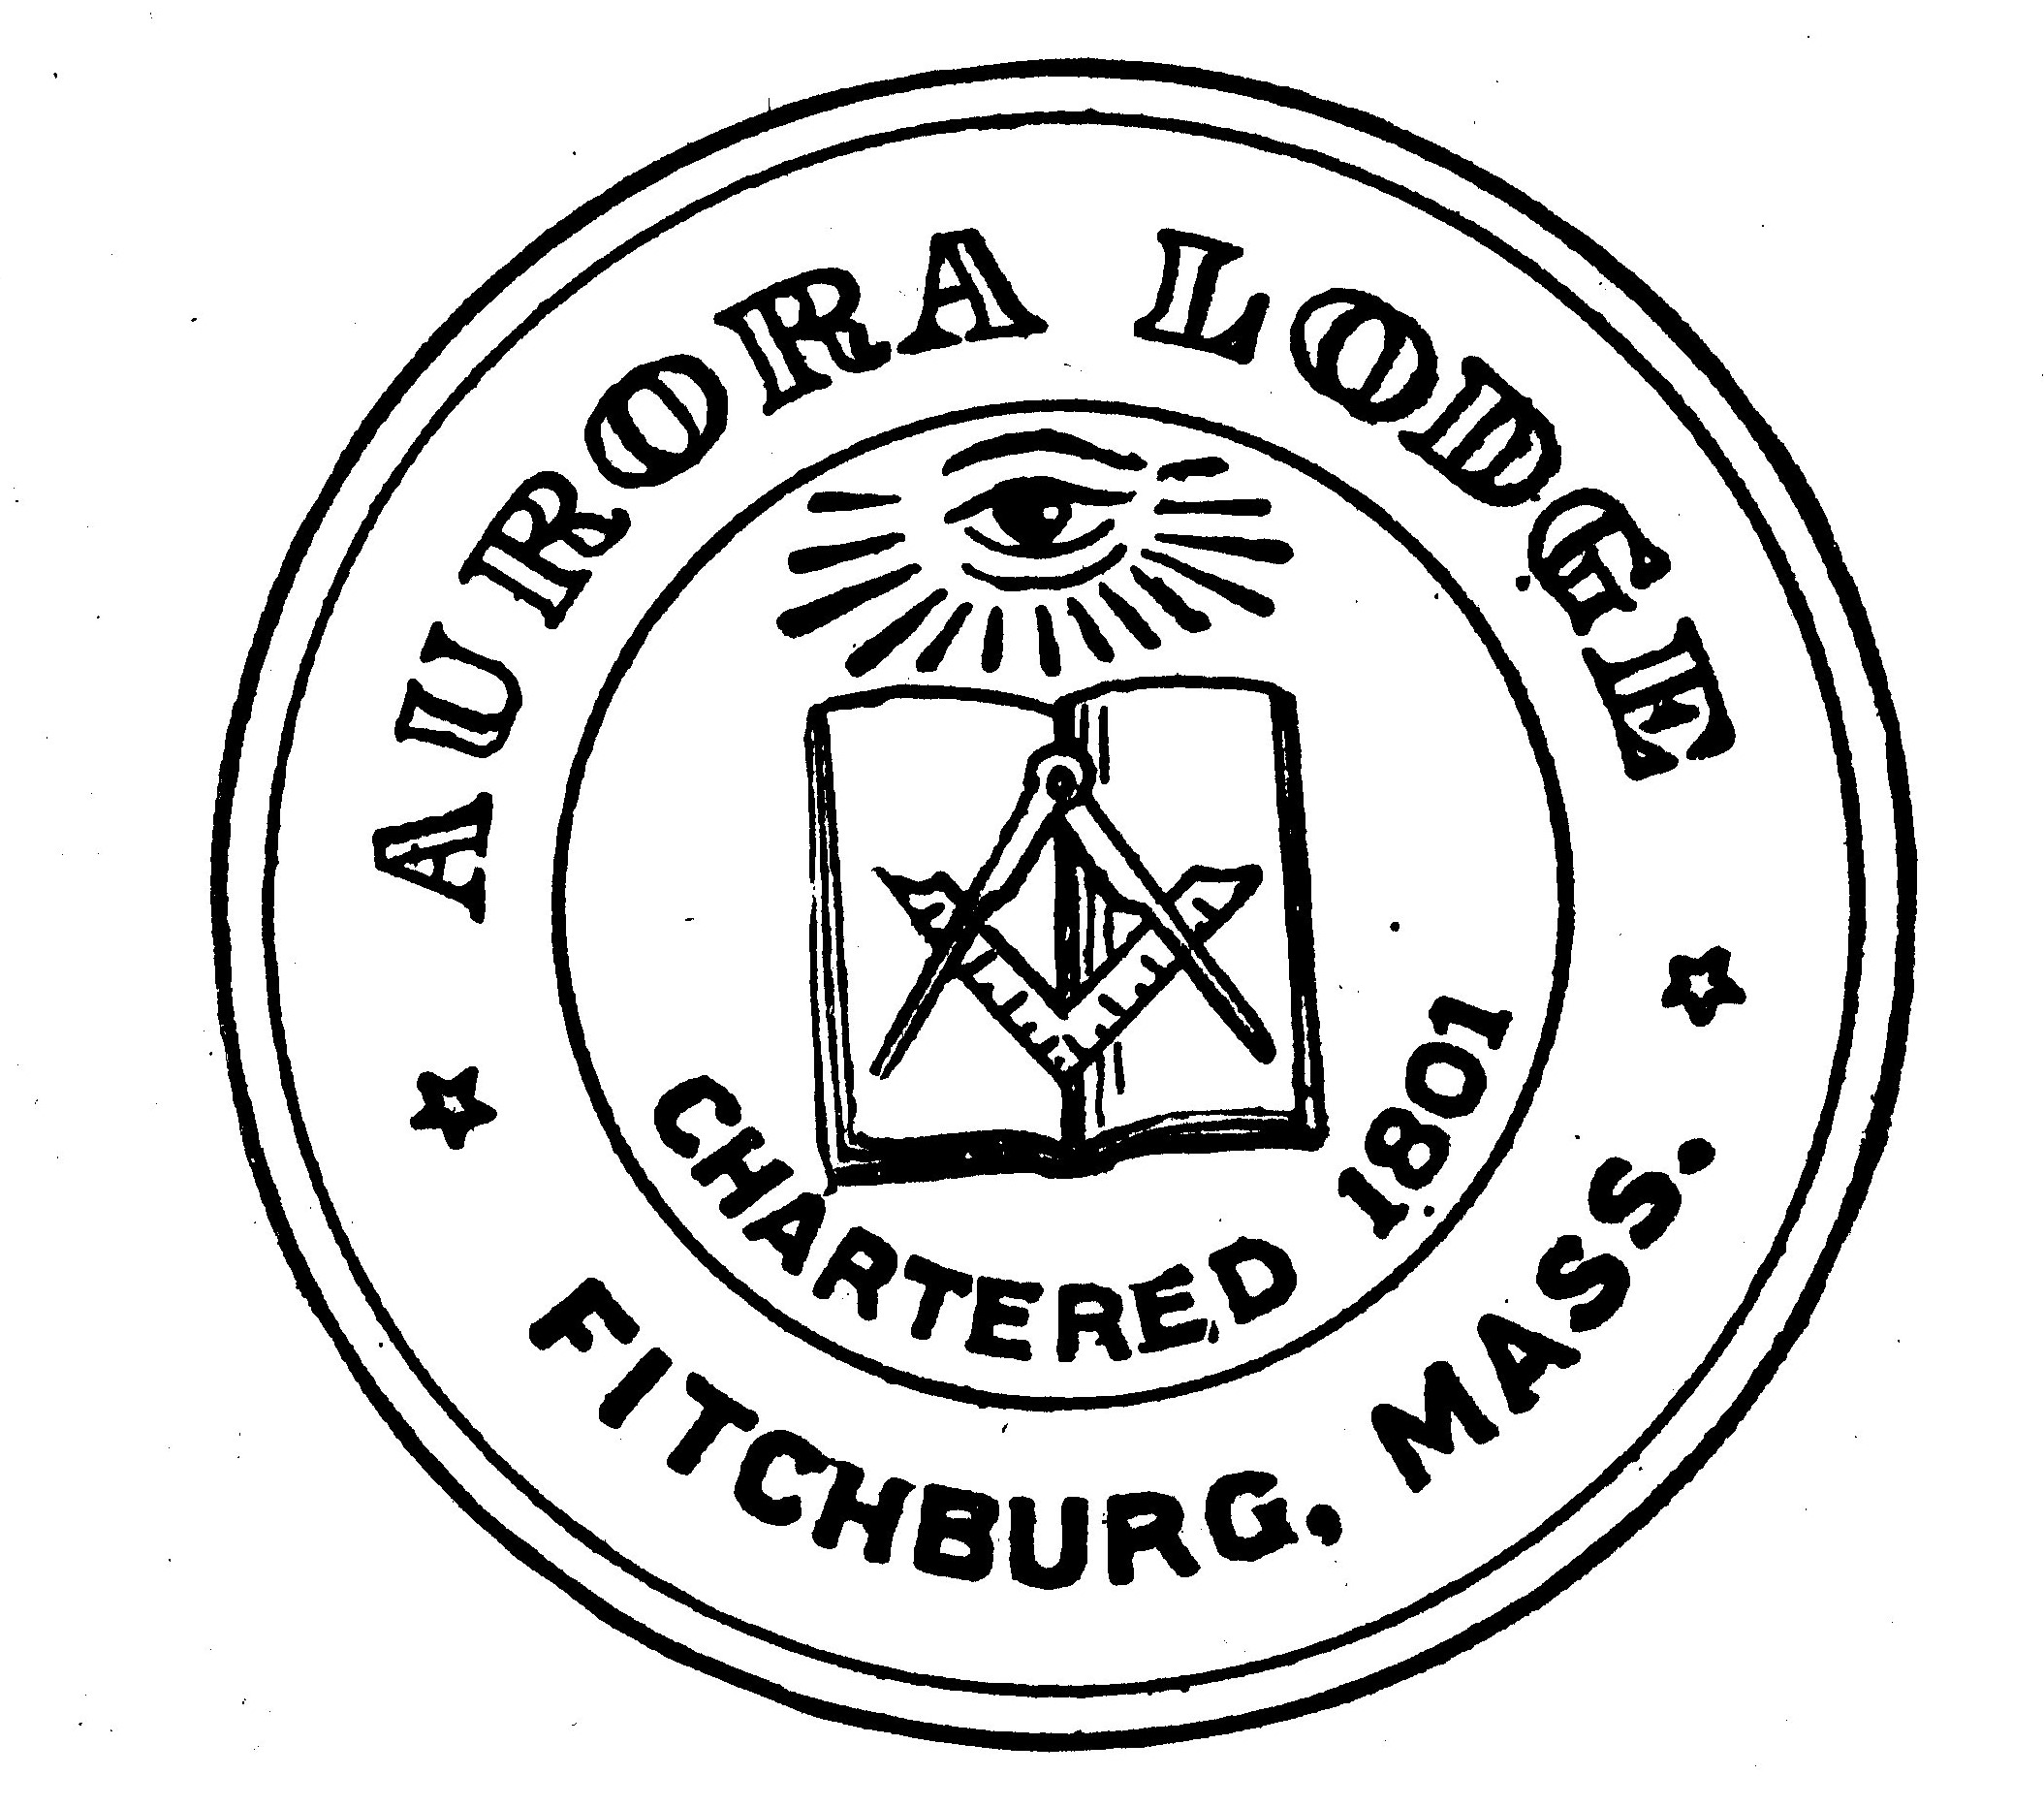 Aurora Lodge Fitchburg MA